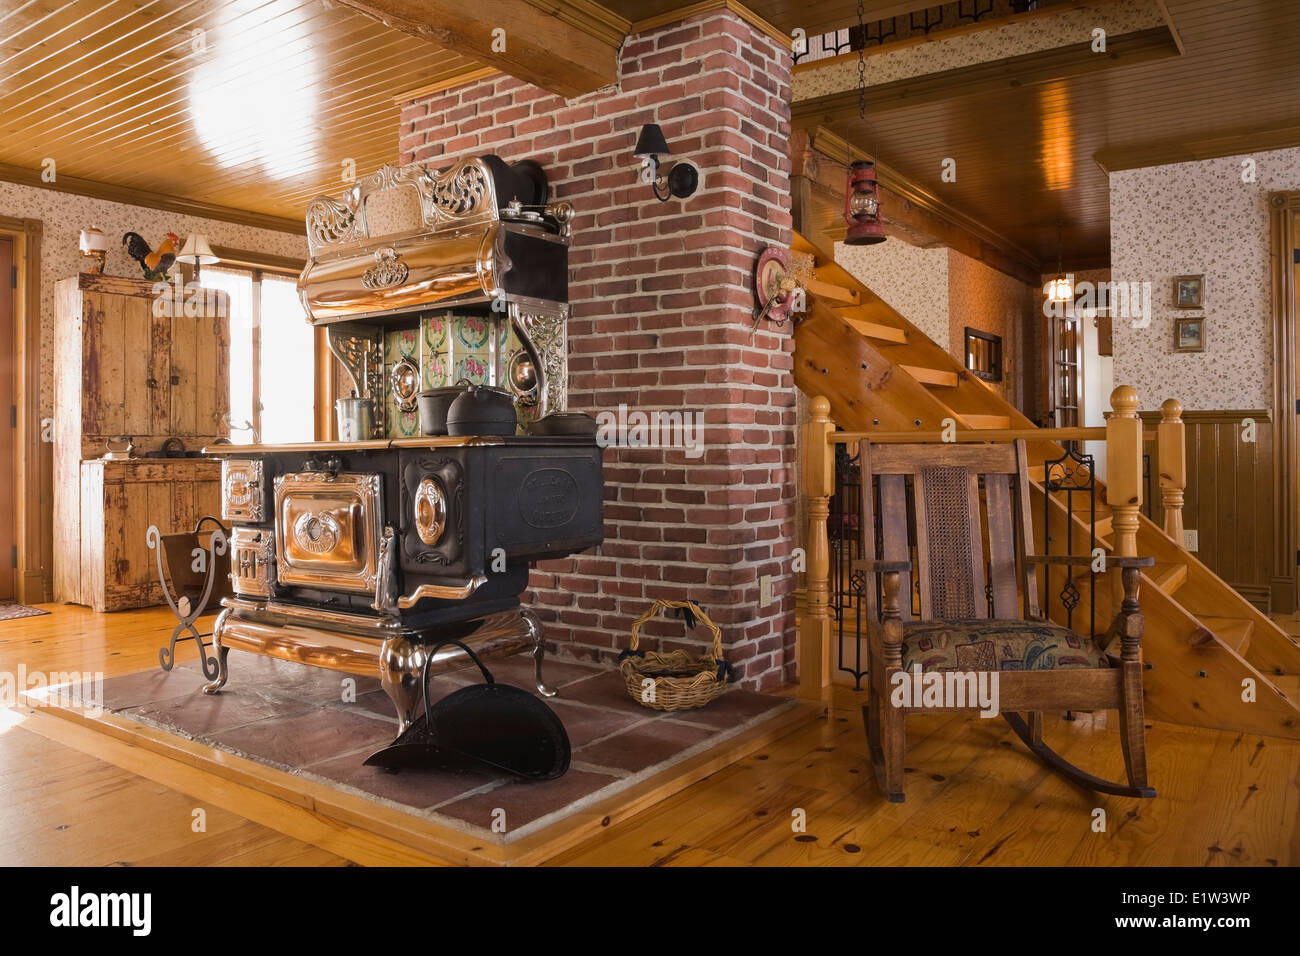 Old Legare S Rural Antique Wood Stove In The Living Room A